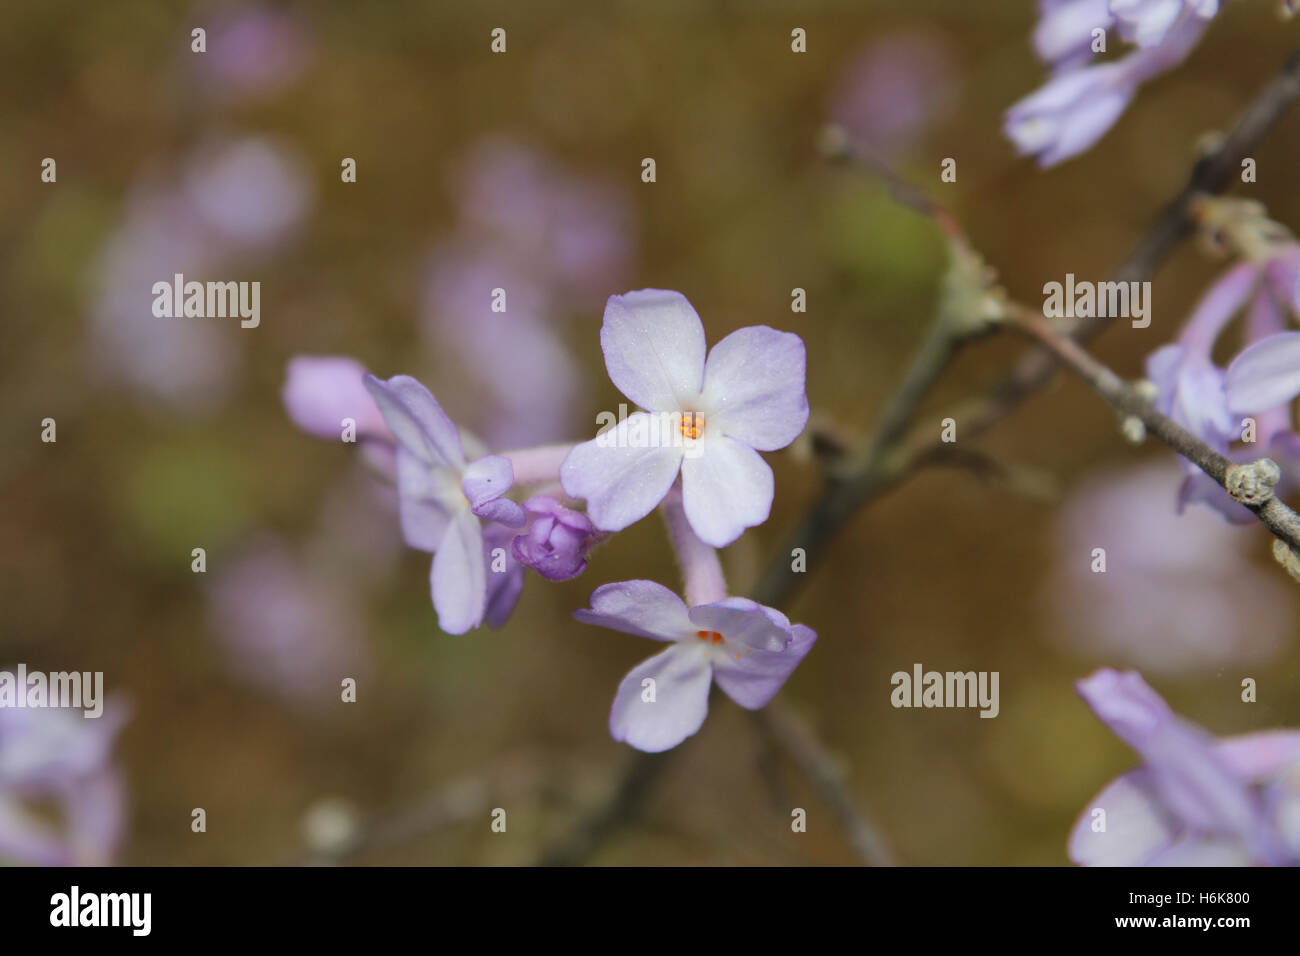 White flower with purple center stock photos white flower with focus on center of the small white purple flower in springtime stock image mightylinksfo